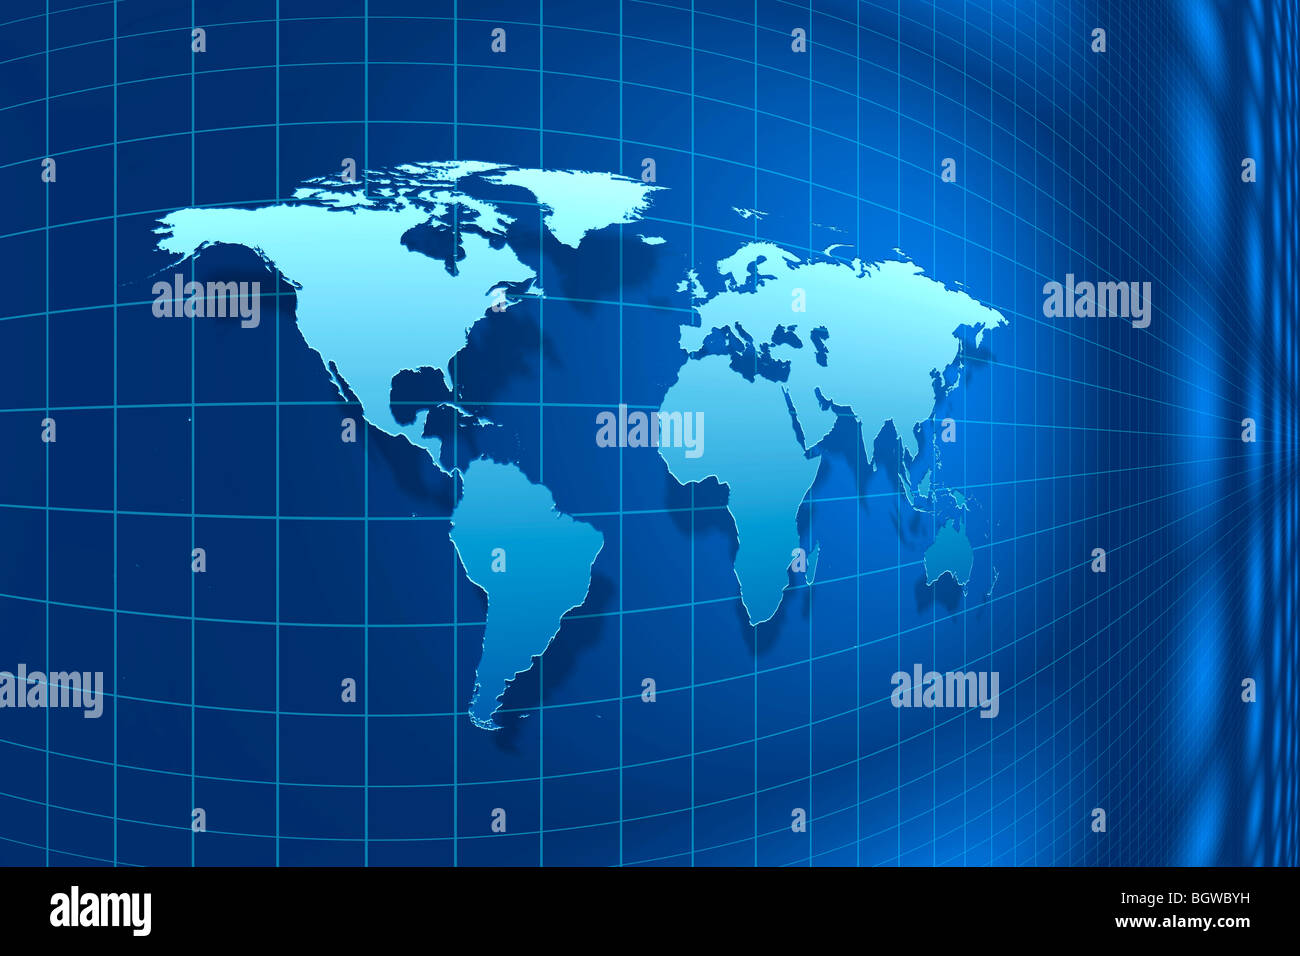 Perspective view of a light blue world map against a dark blue stock perspective view of a light blue world map against a dark blue background with a blue grid 3d illustration gumiabroncs Images